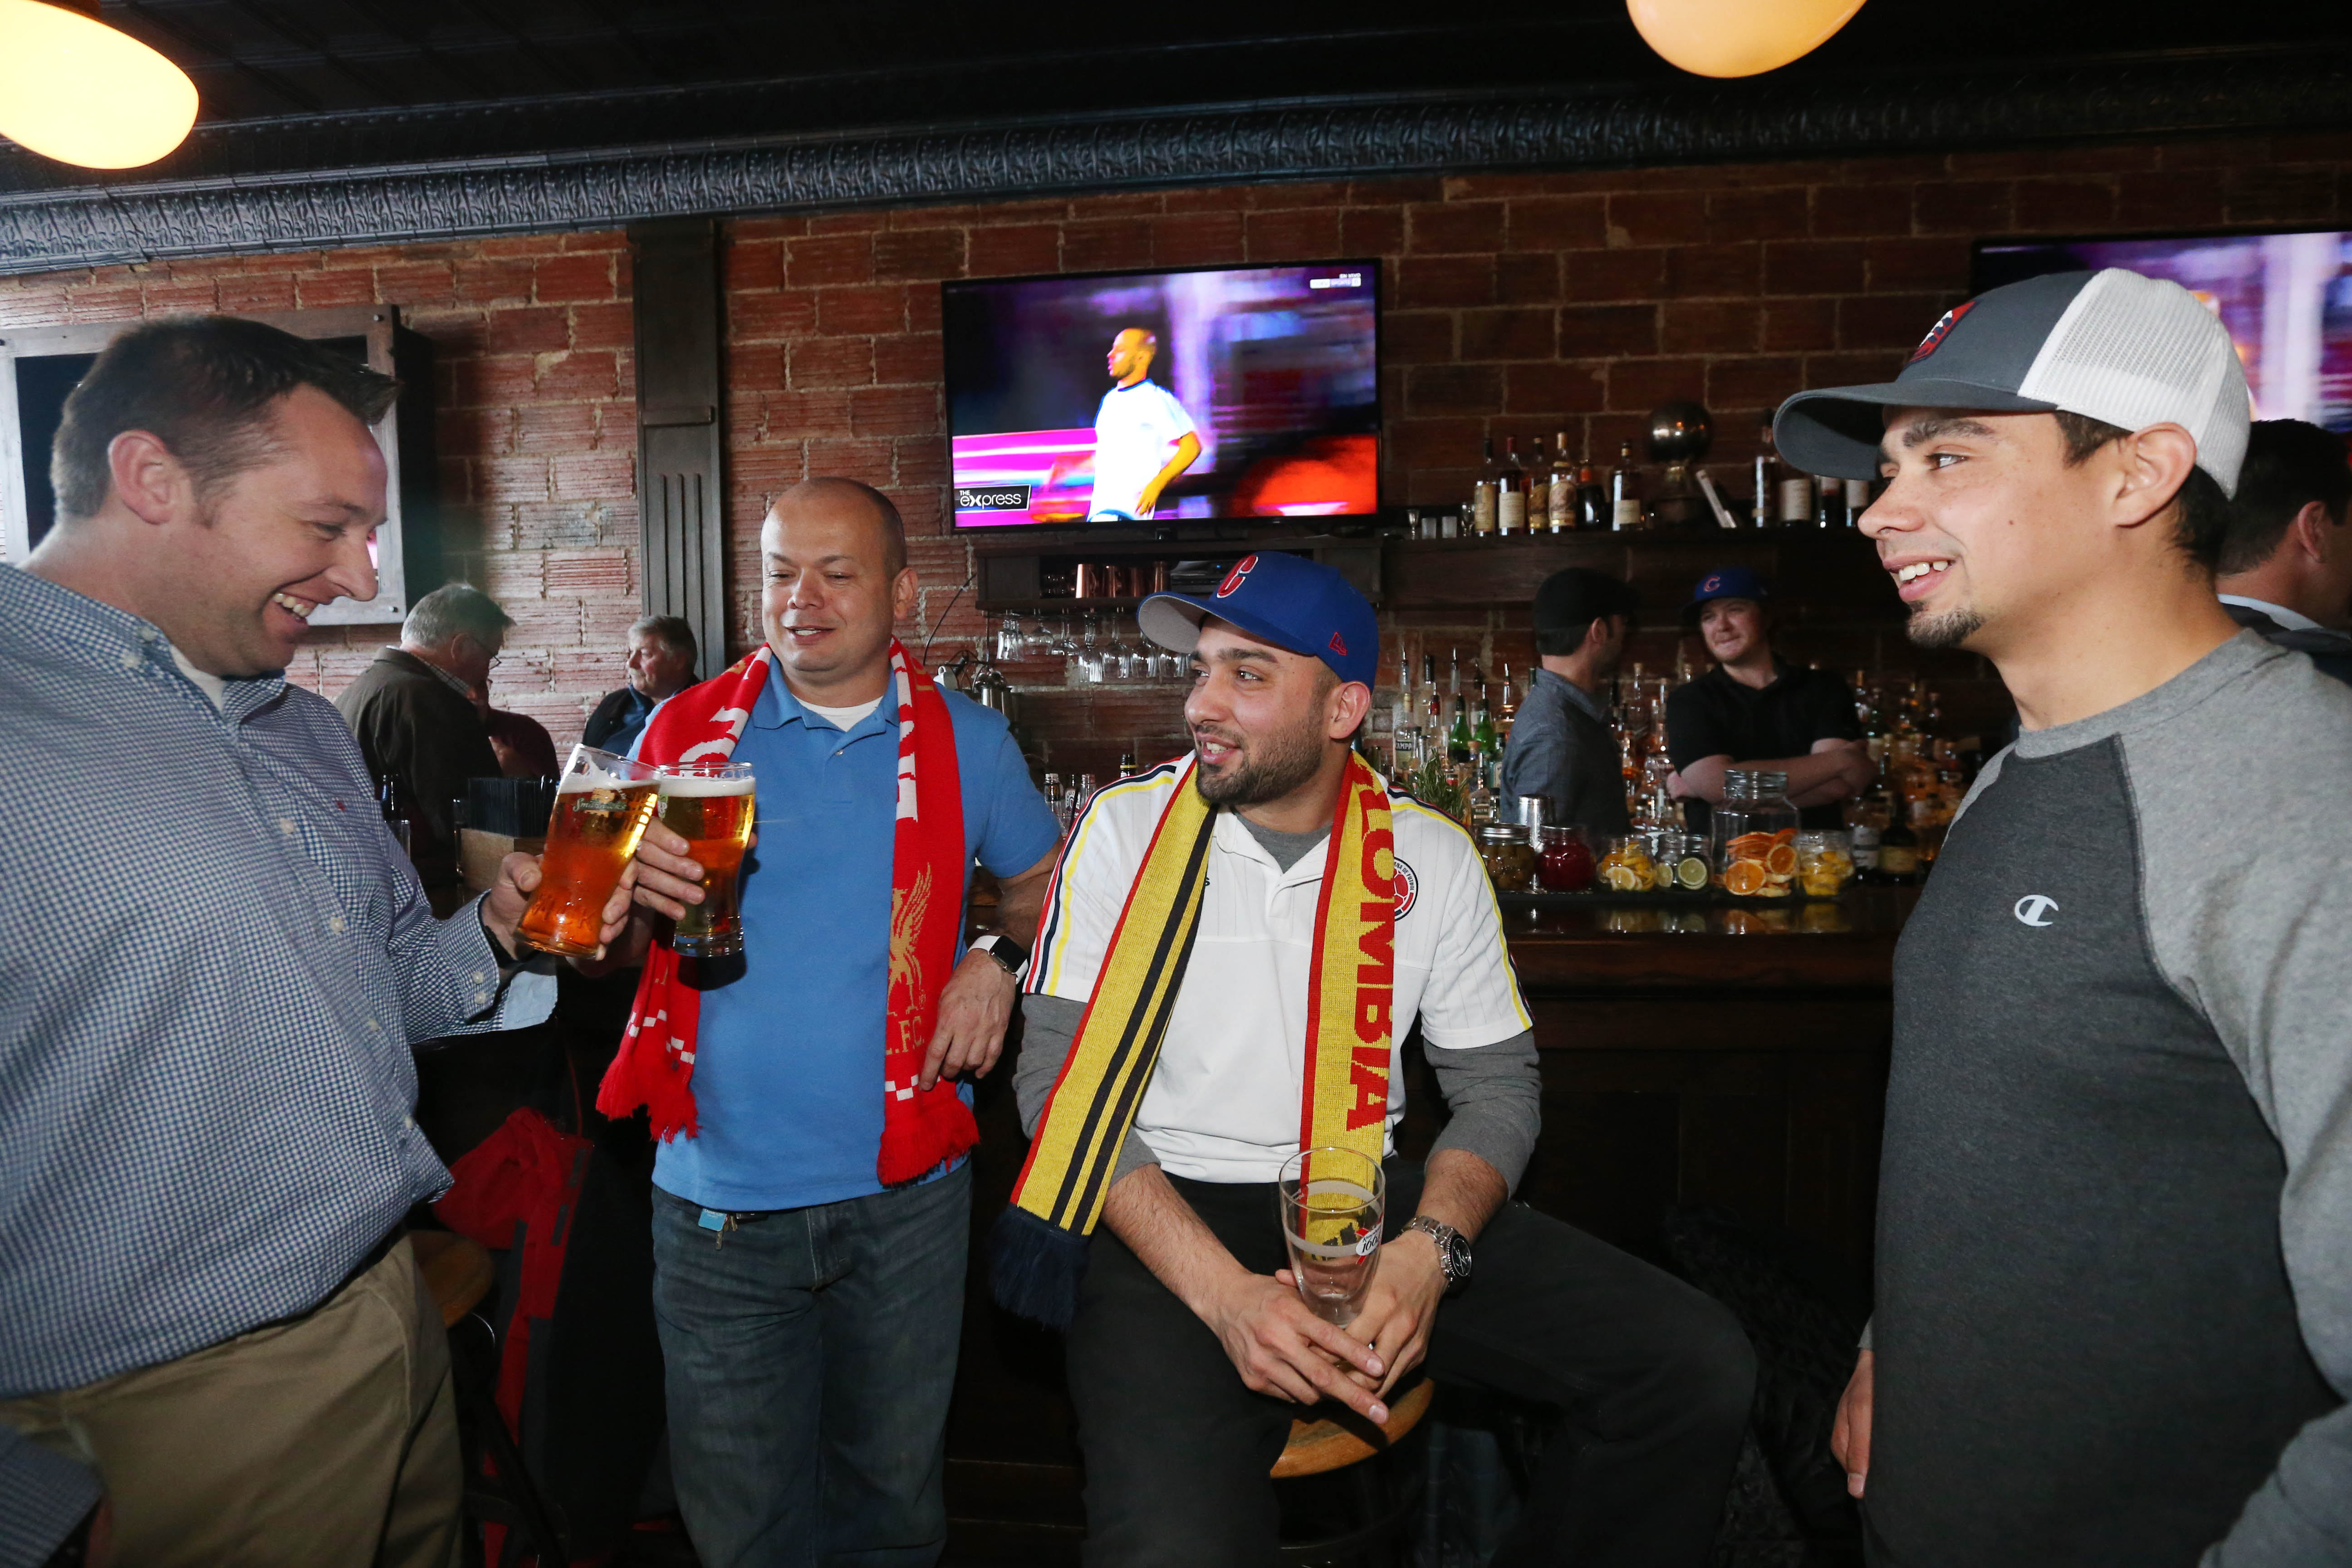 Soccer fans Dan Scott, left, Miguel Salazar, Andres Paehy and Glen Friot hang out recently at Mes Que. (Sharon Cantillon/Buffalo News)